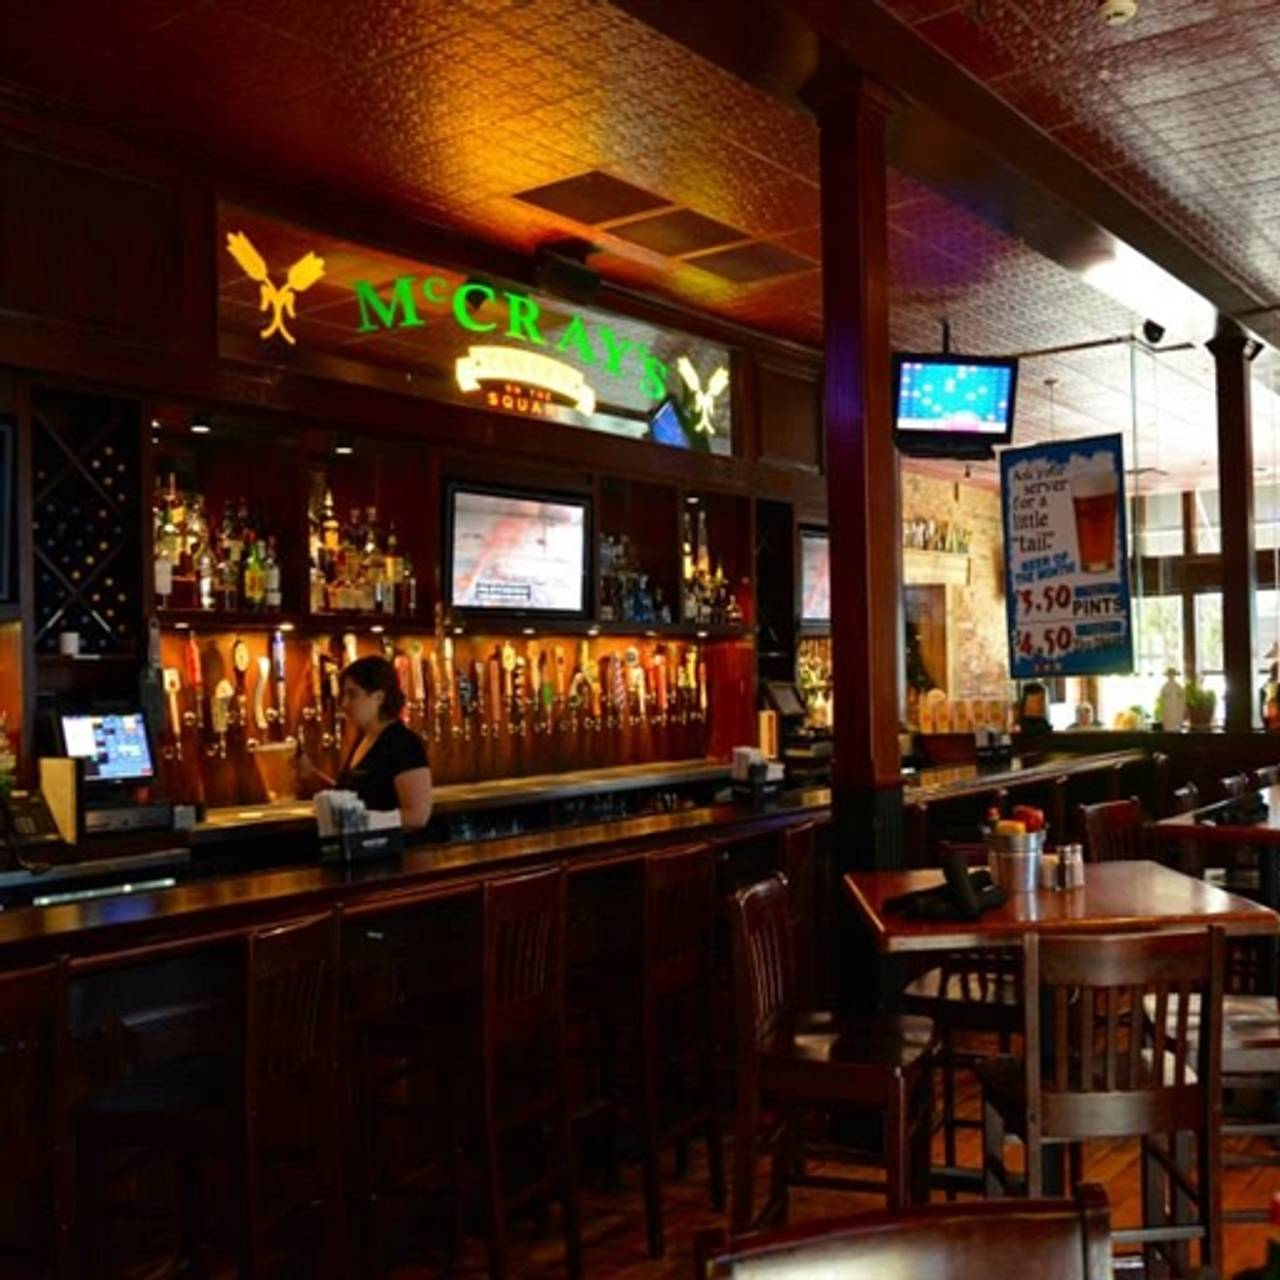 Mccrays Tavern On The Square Restaurant Lawrenceville Ga Opentable